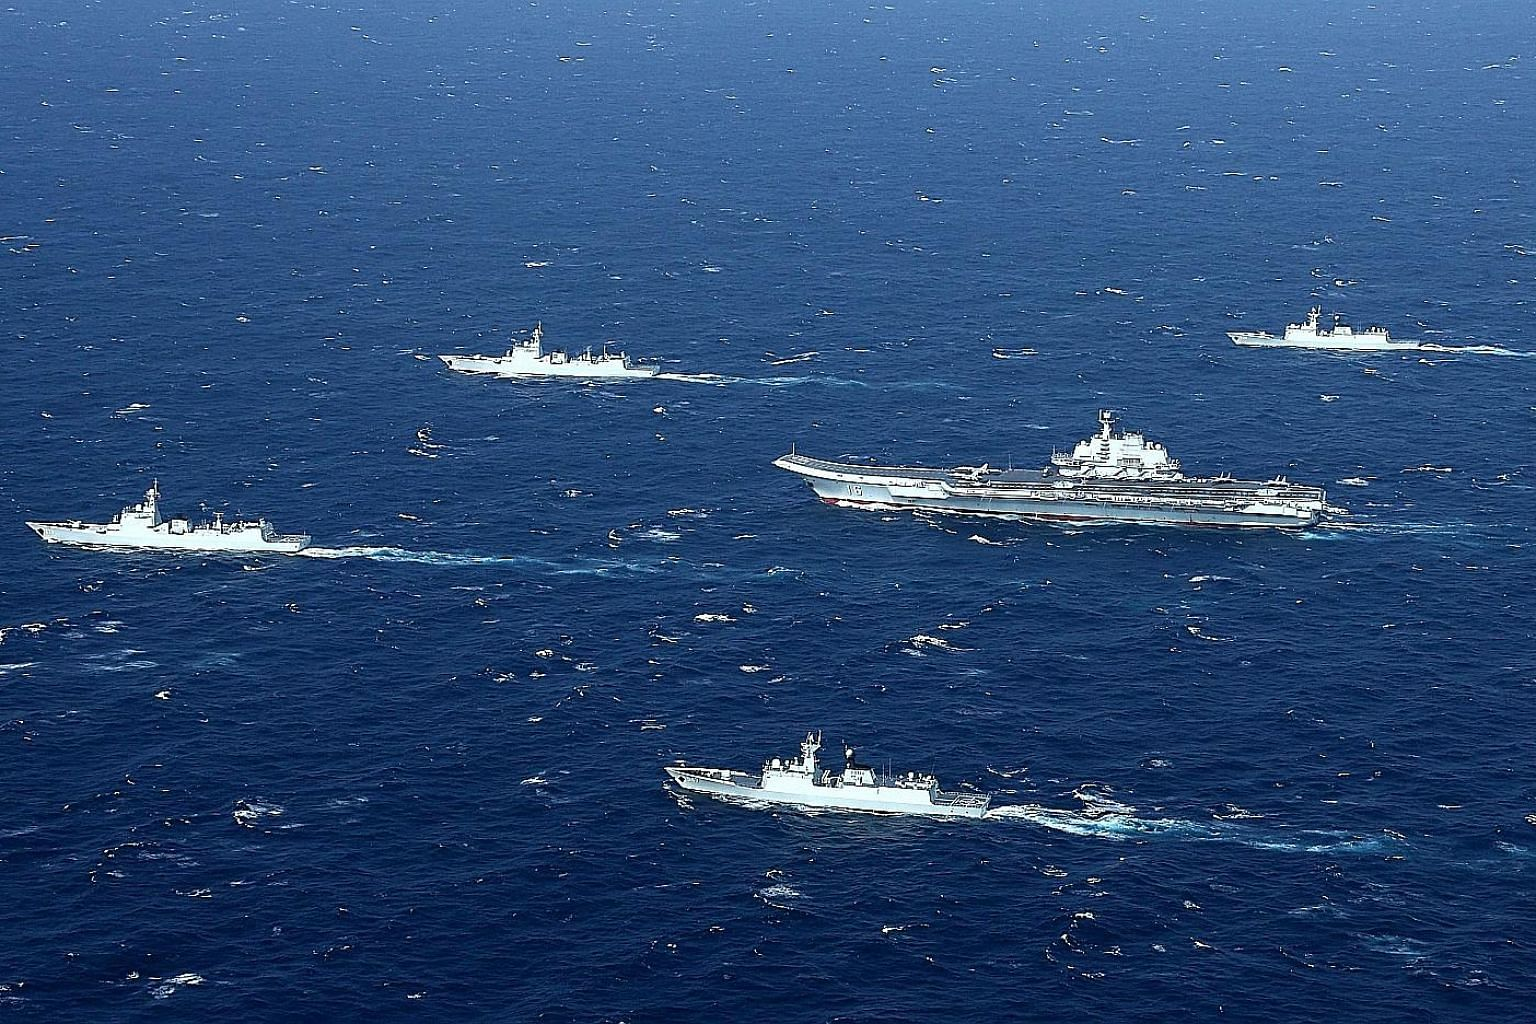 """A January 2017 photo showing Chinese military drills in the South China Sea. China claims a large swathe of the South China Sea within its """"nine-dash line"""", including waters and maritime entitlements within the exclusive economic zones of other coast"""